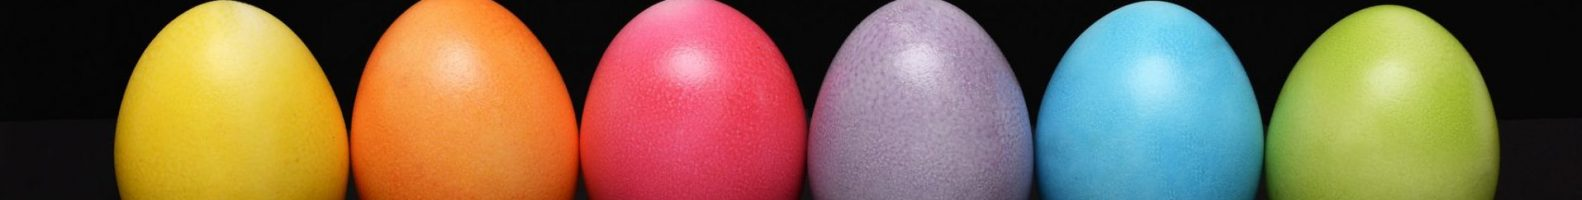 Easter Eggs In Fiction